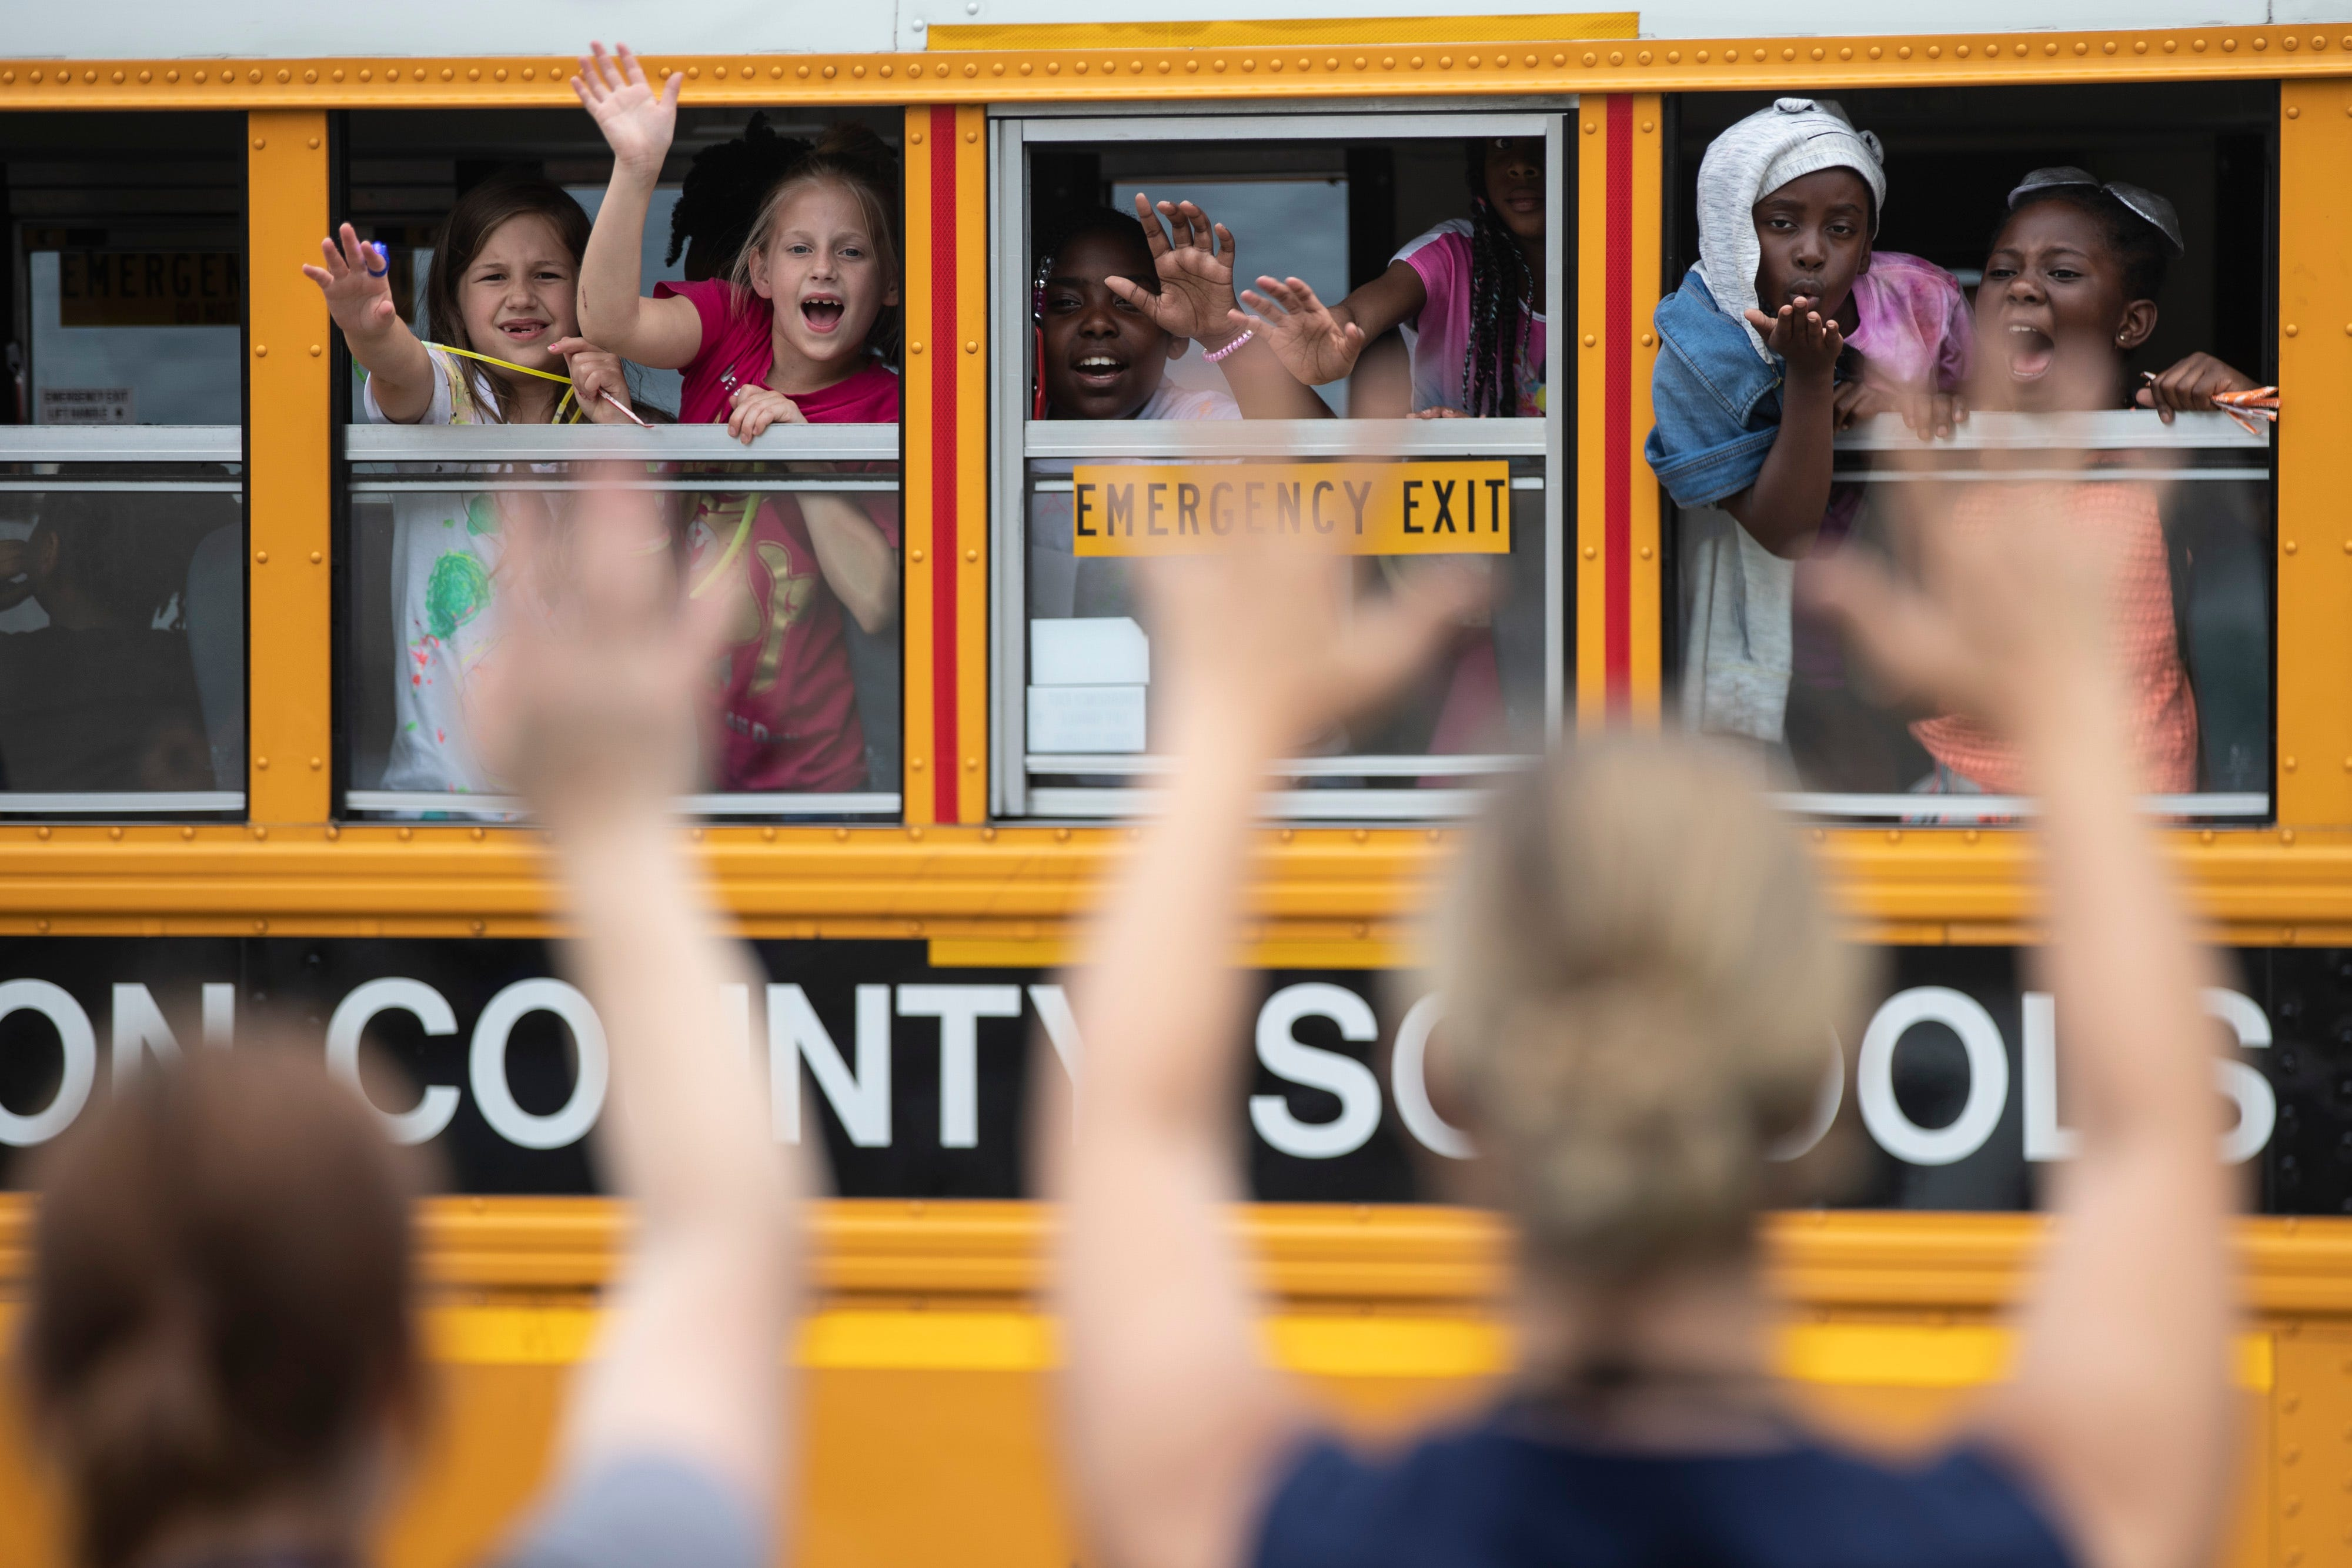 Lincoln Elementary students wave goodbye to teachers on the last day of school before summer break begins. June 7, 2019